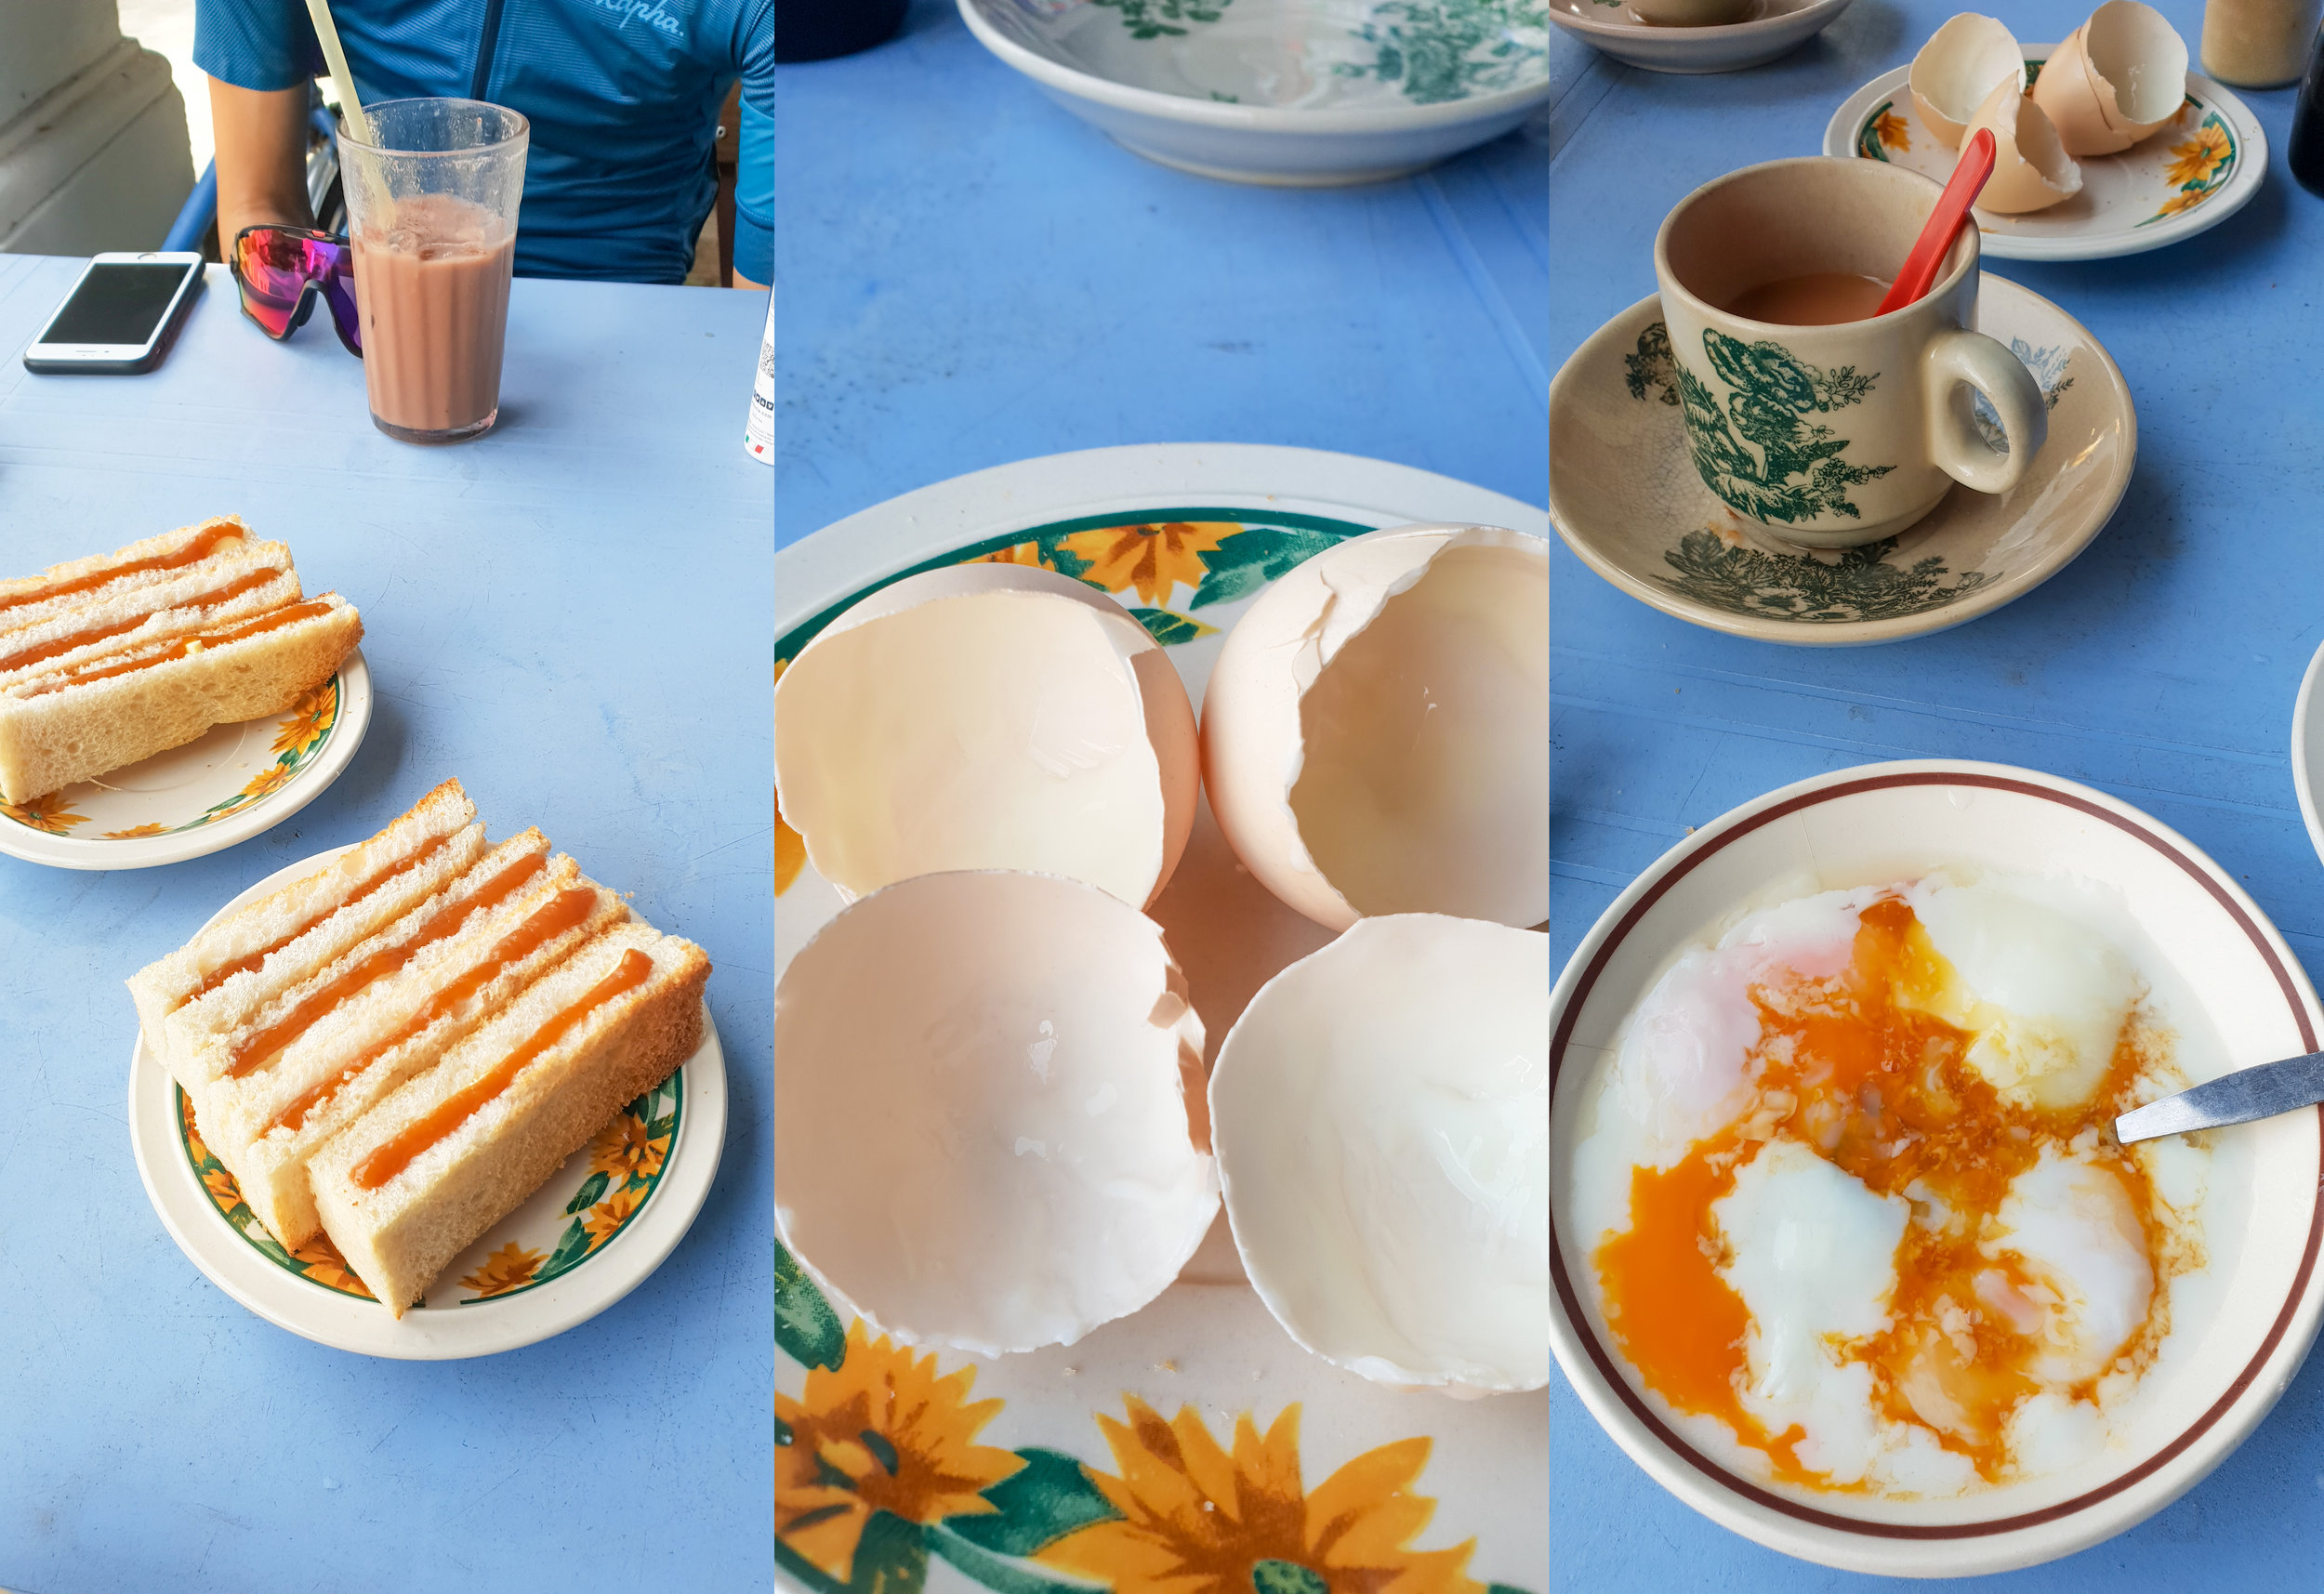 08:15 Free range eggs & toast amounting to less that 5 ringgit per person